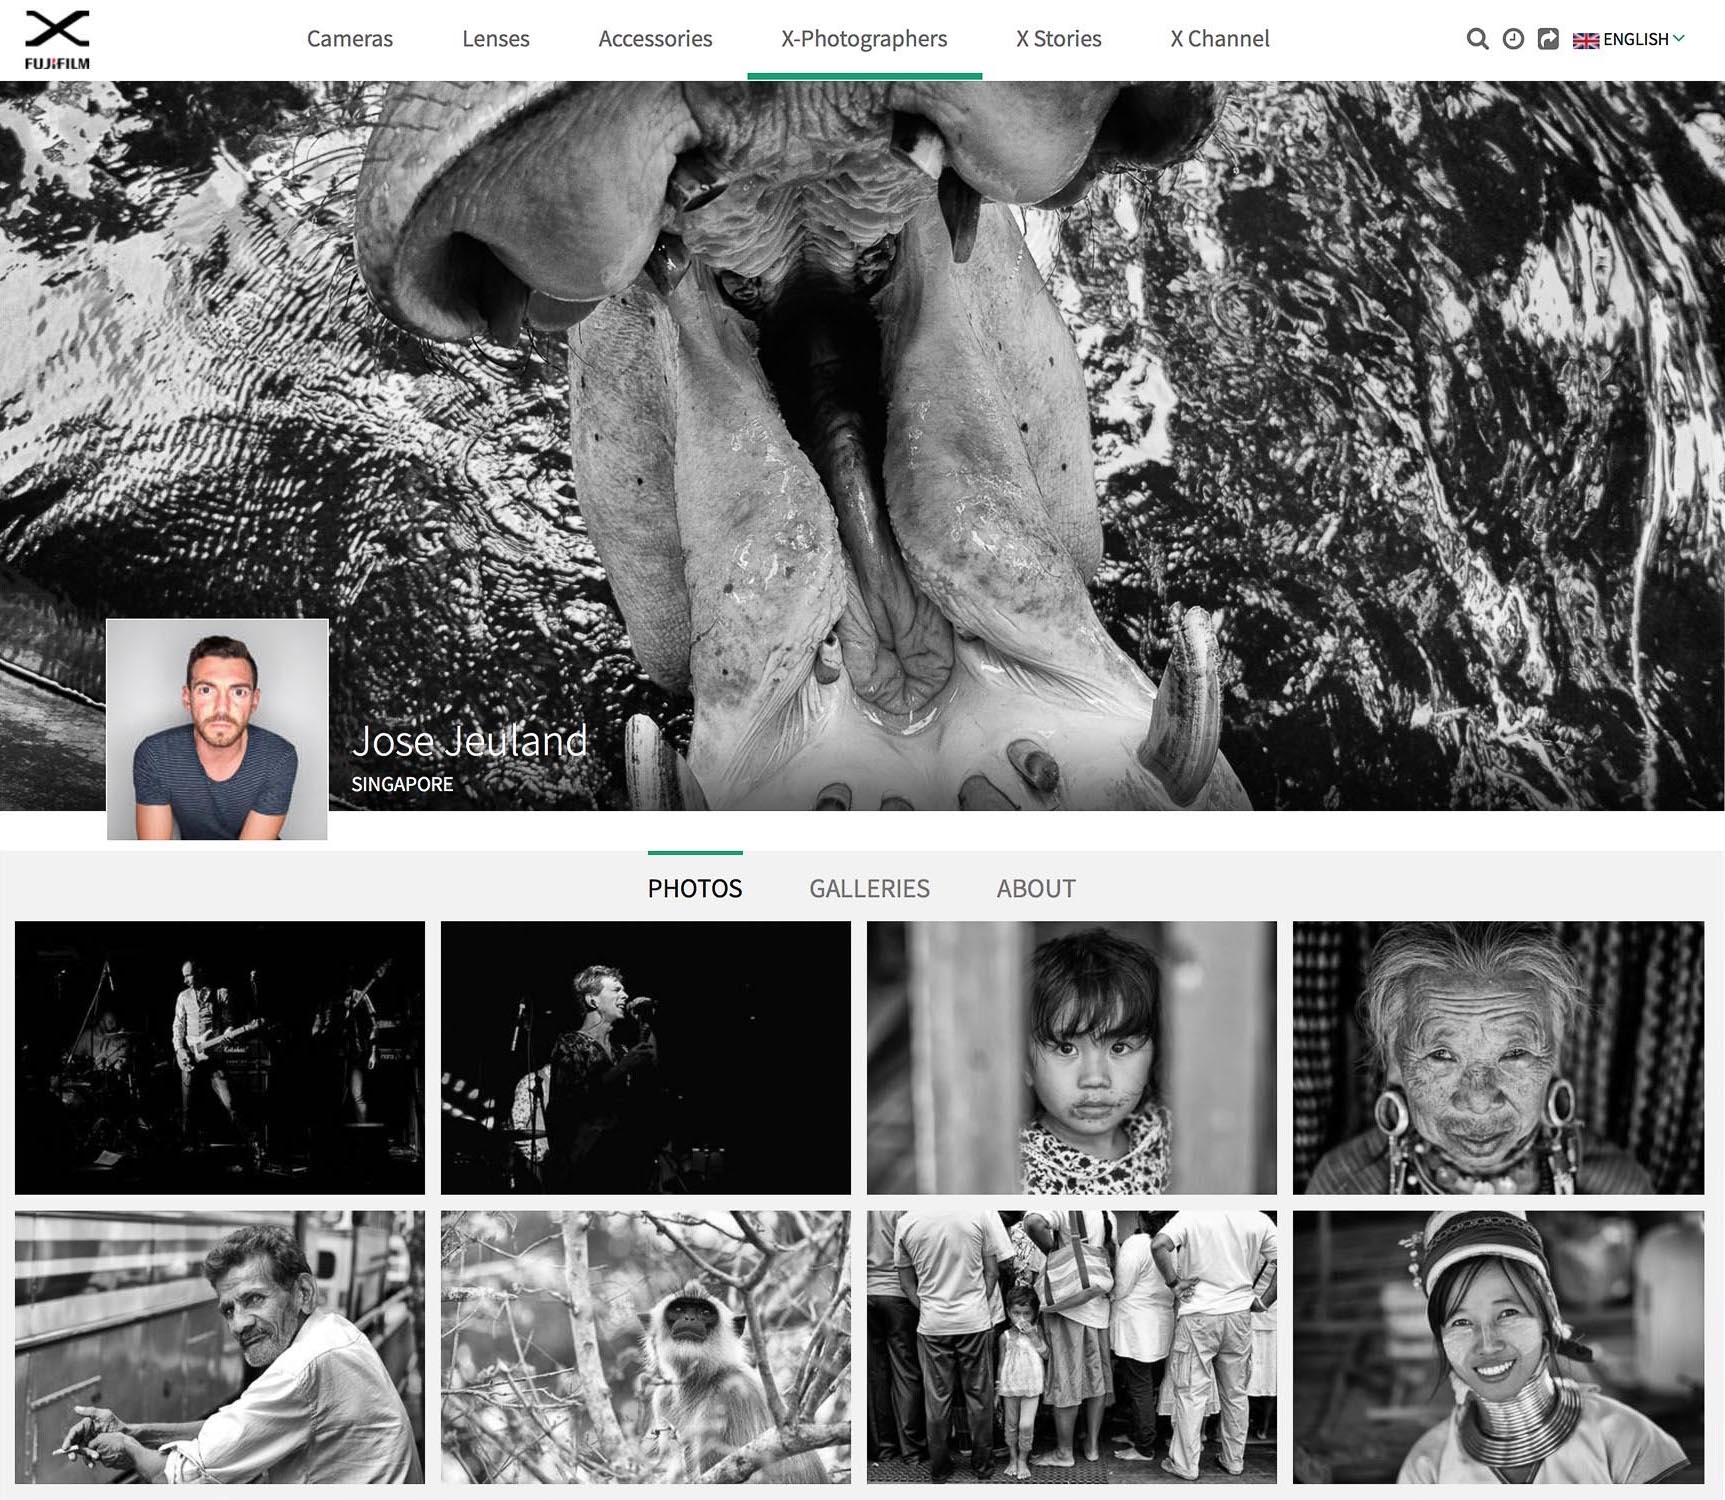 Fujifilm x photographer joe jeuland gallery photography singapore